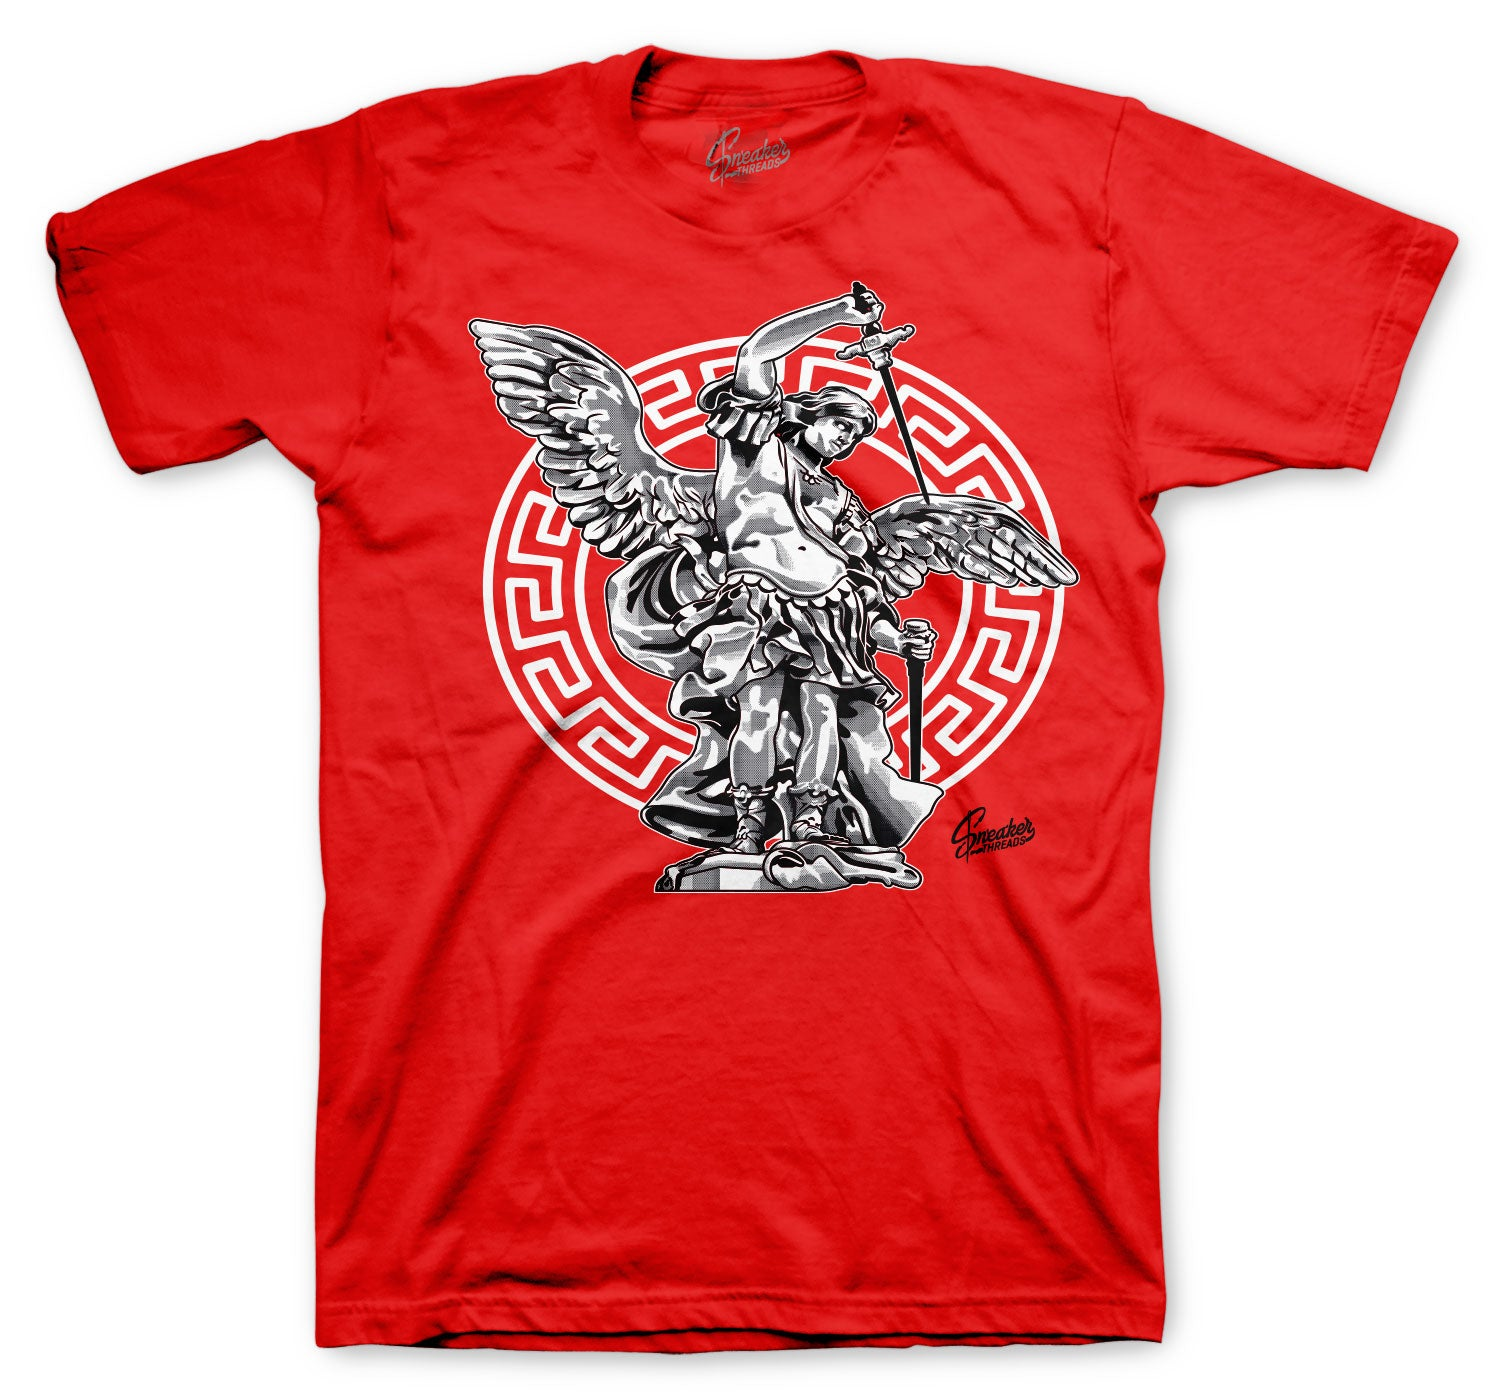 Jordan 1 AJKO Chicago Shirt - ST Michael - Red